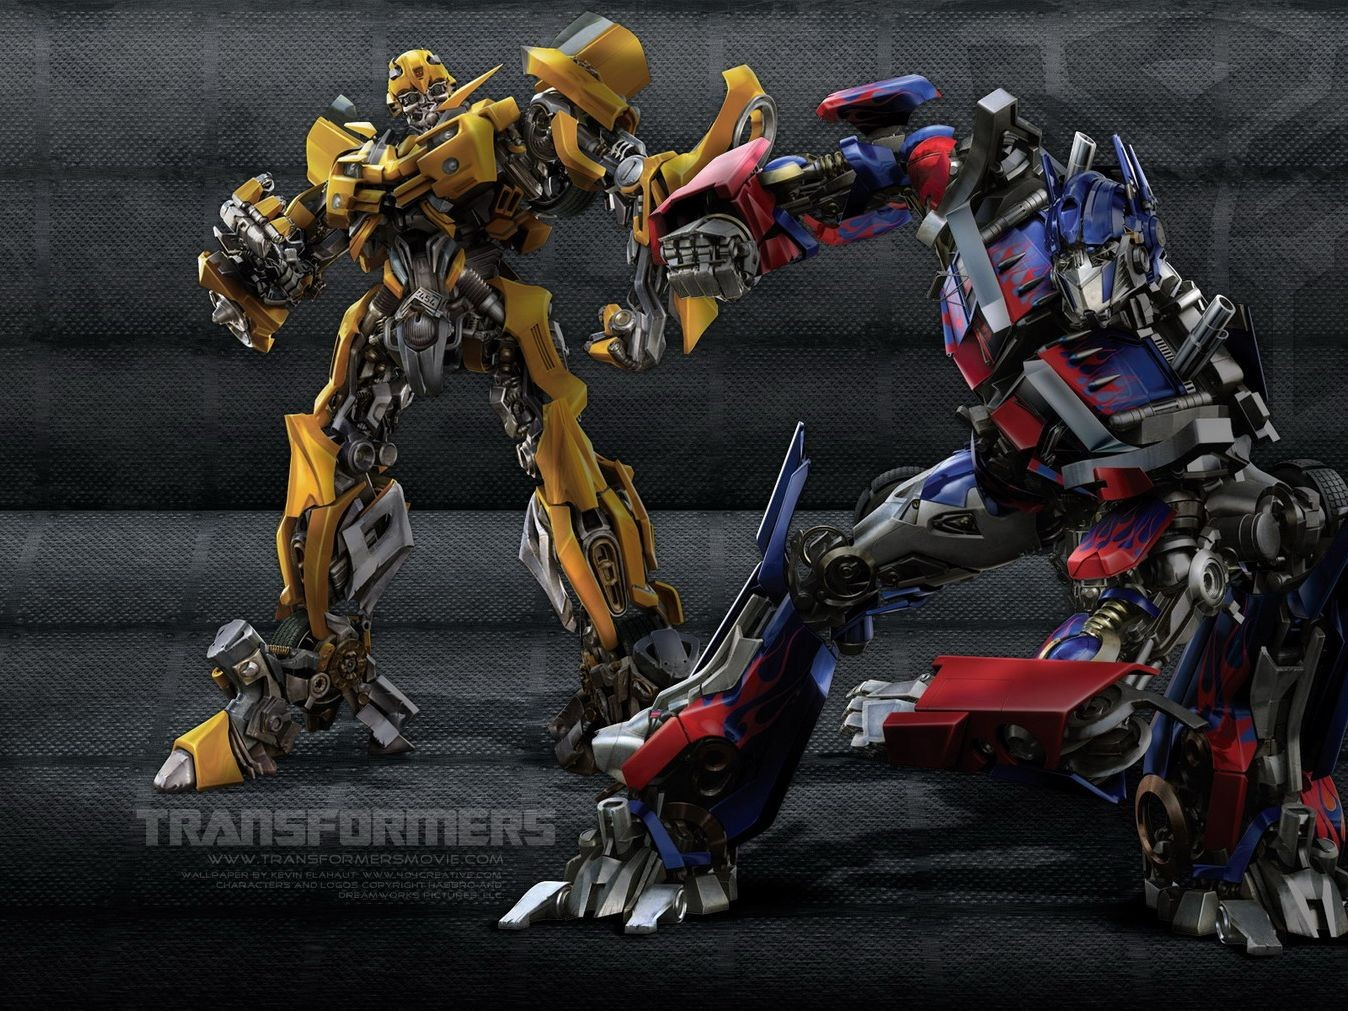 Transformers Fighting Background